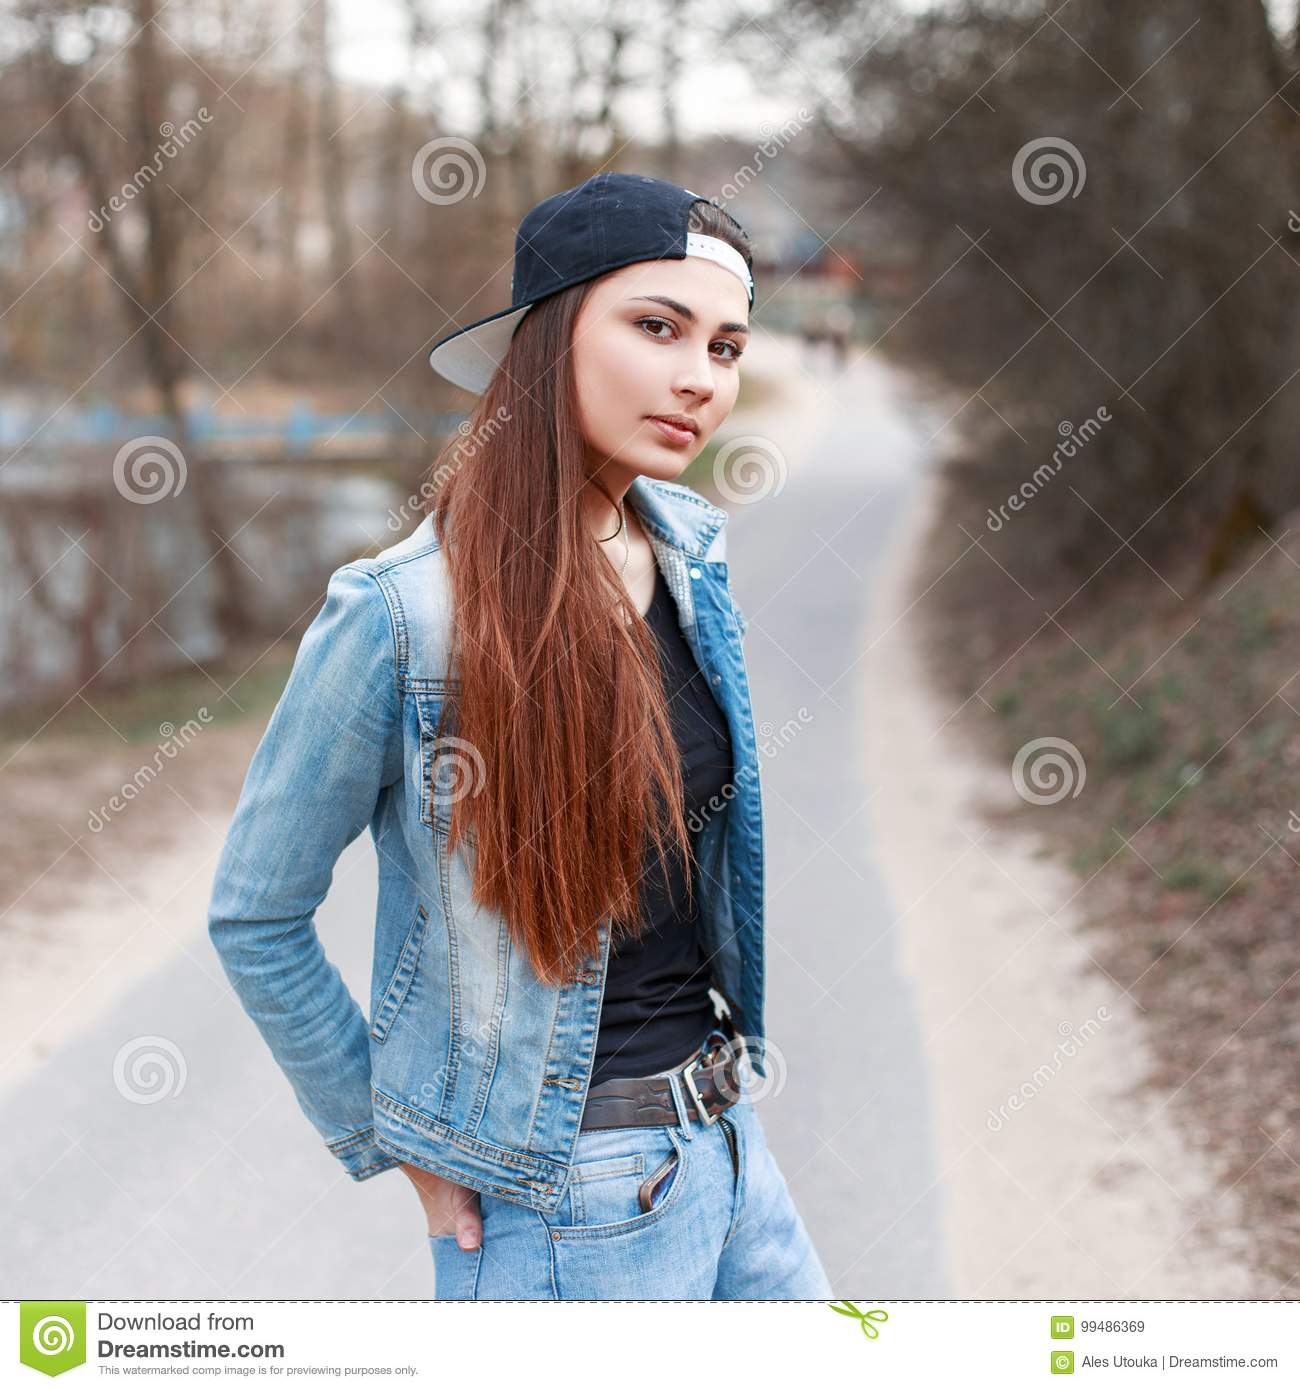 Fashionable young girl in a black cap and jeans jacket standing